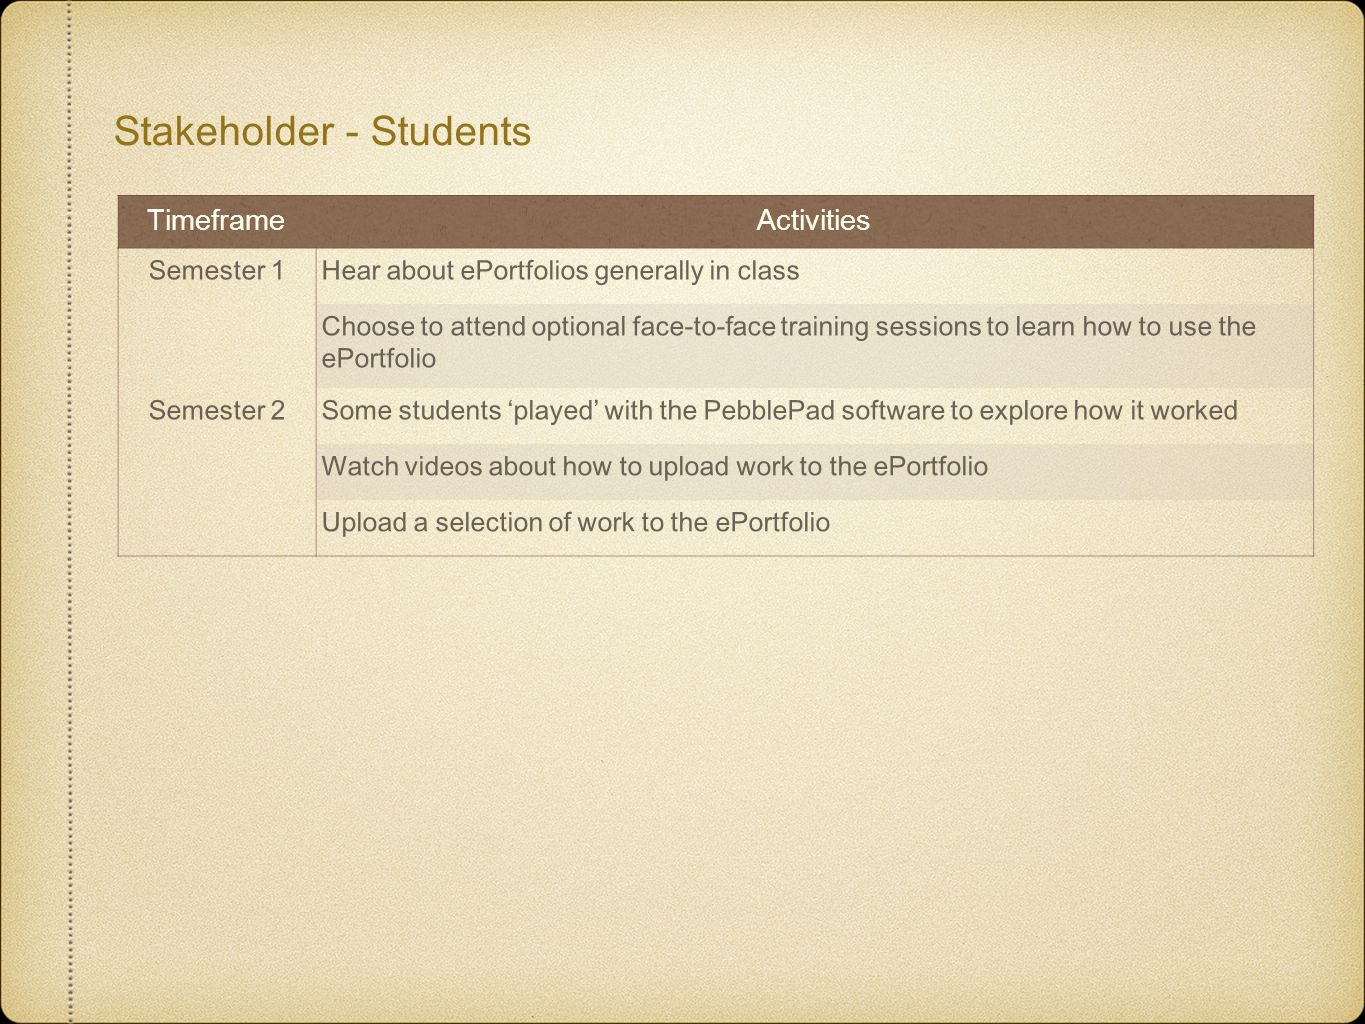 Stakeholder - Students